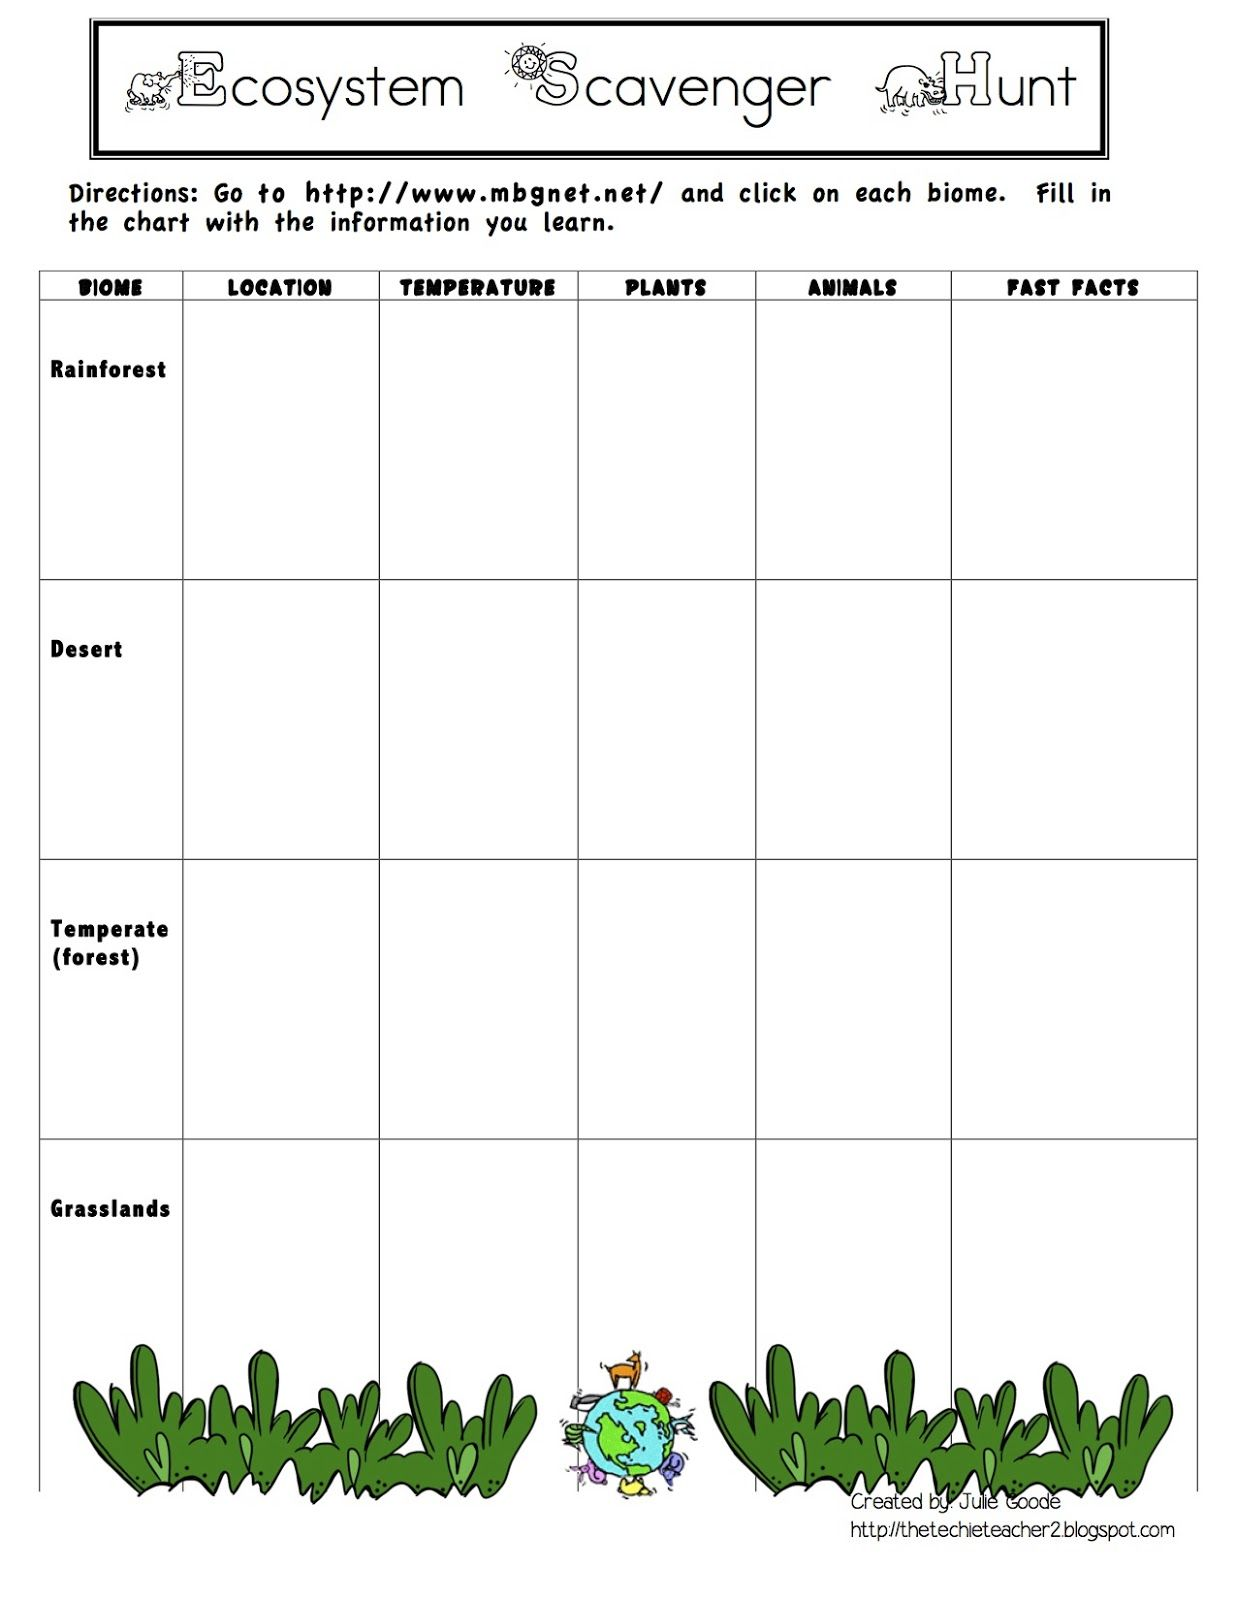 worksheet Biome Webquest Worksheet ecosystemhabitatbiome webquest freebie biomes teacher and school freebie